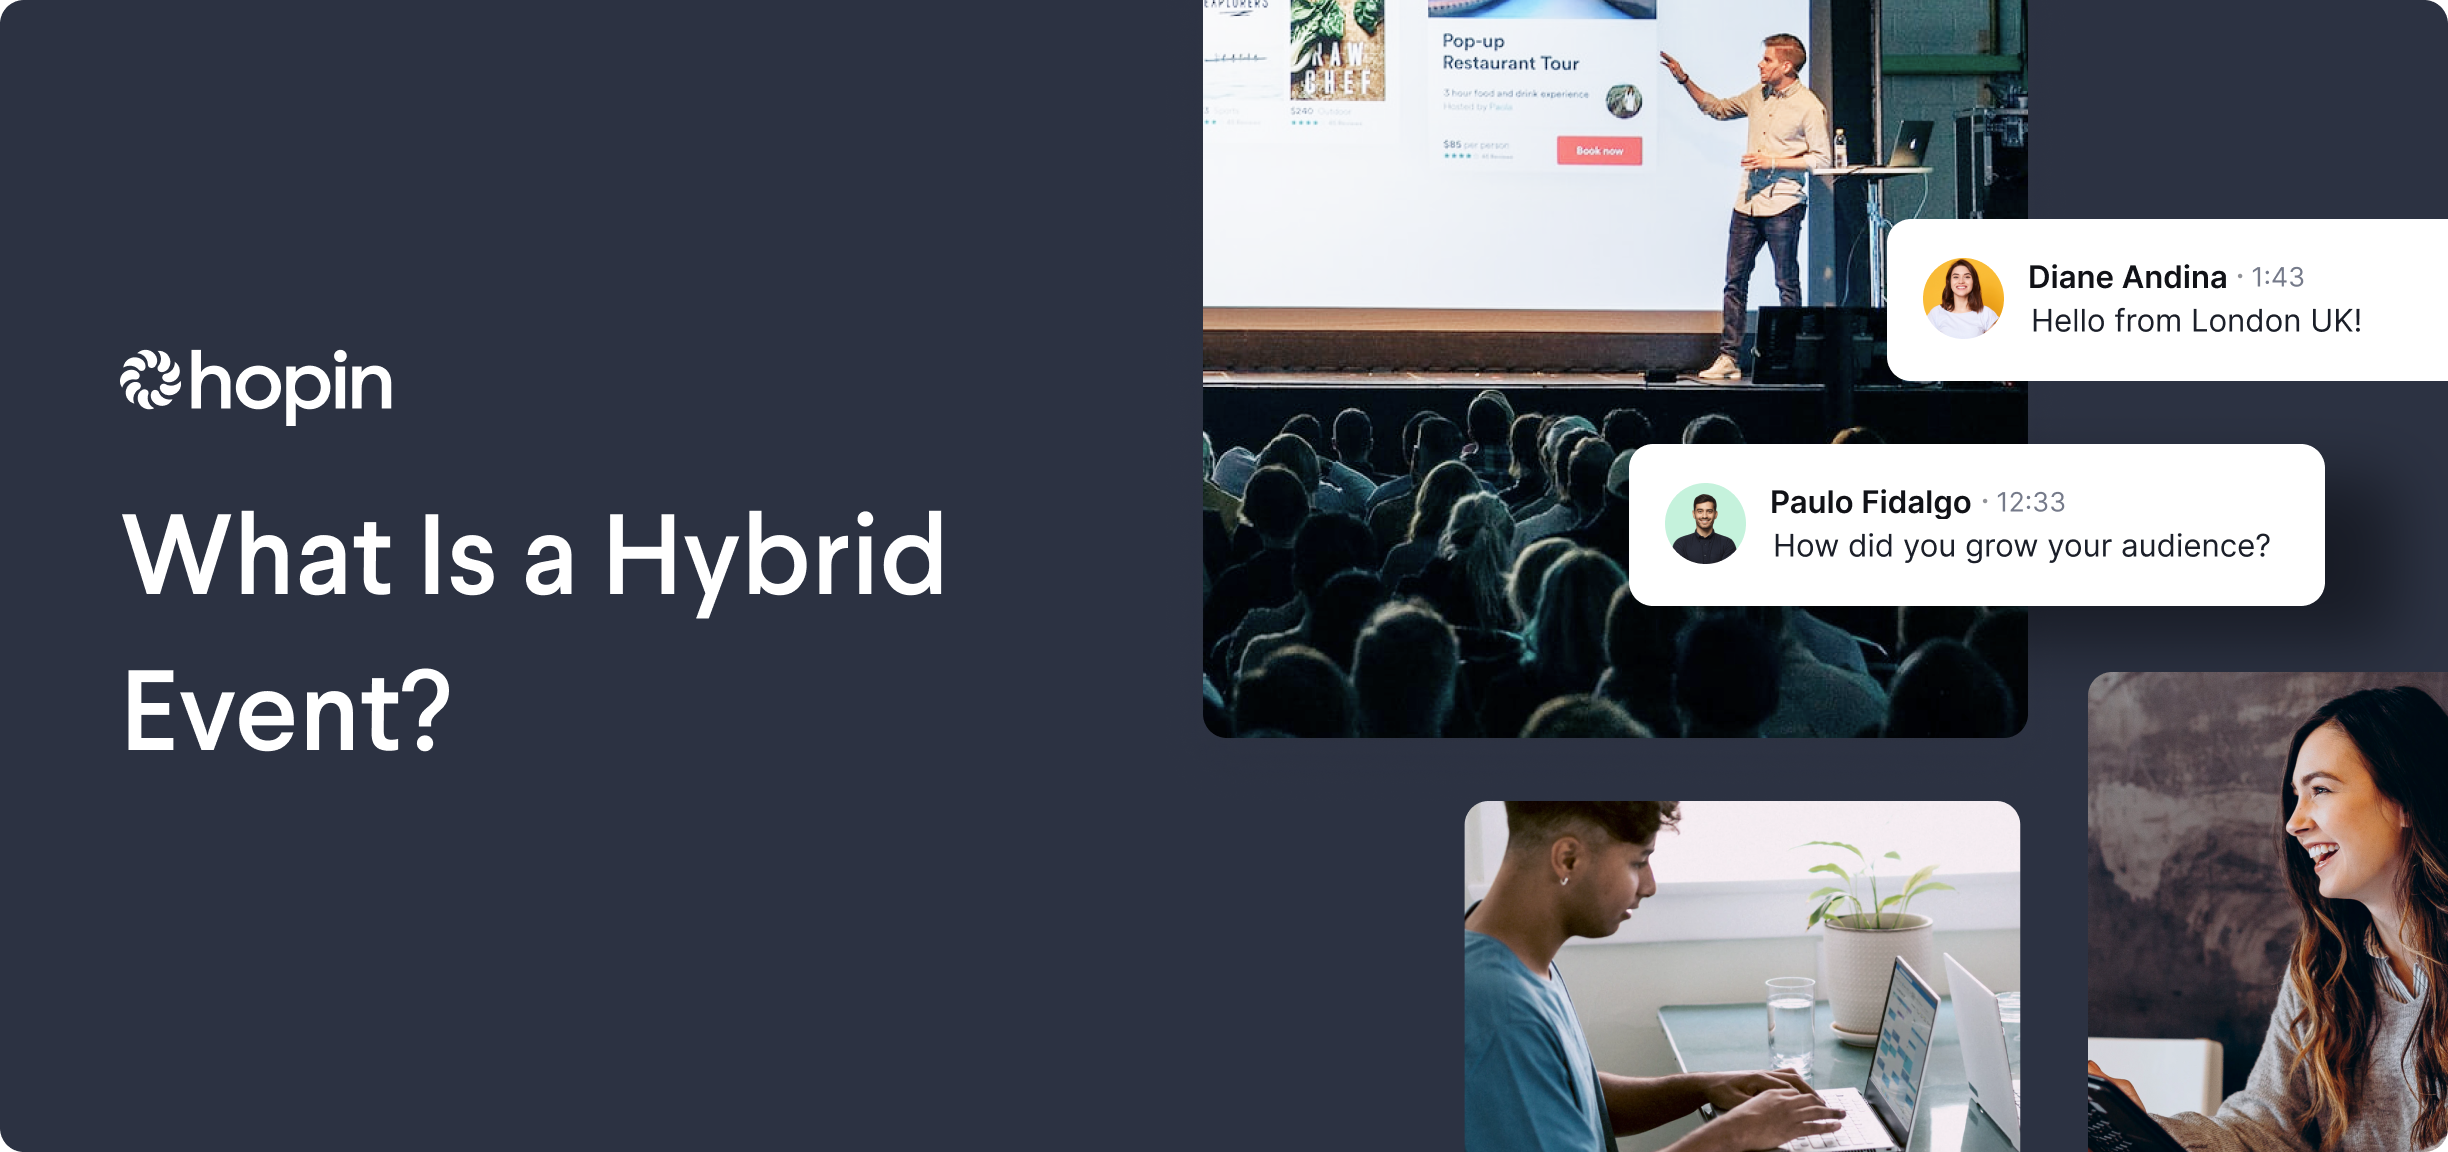 A hybrid event gives you the best of both worlds—the benefits of an in-person event and a virtual event. In this article, we explain what a hybrid event is, the value of hosting a hybrid event, how to host a hybrid event, and hybrid event use cases.